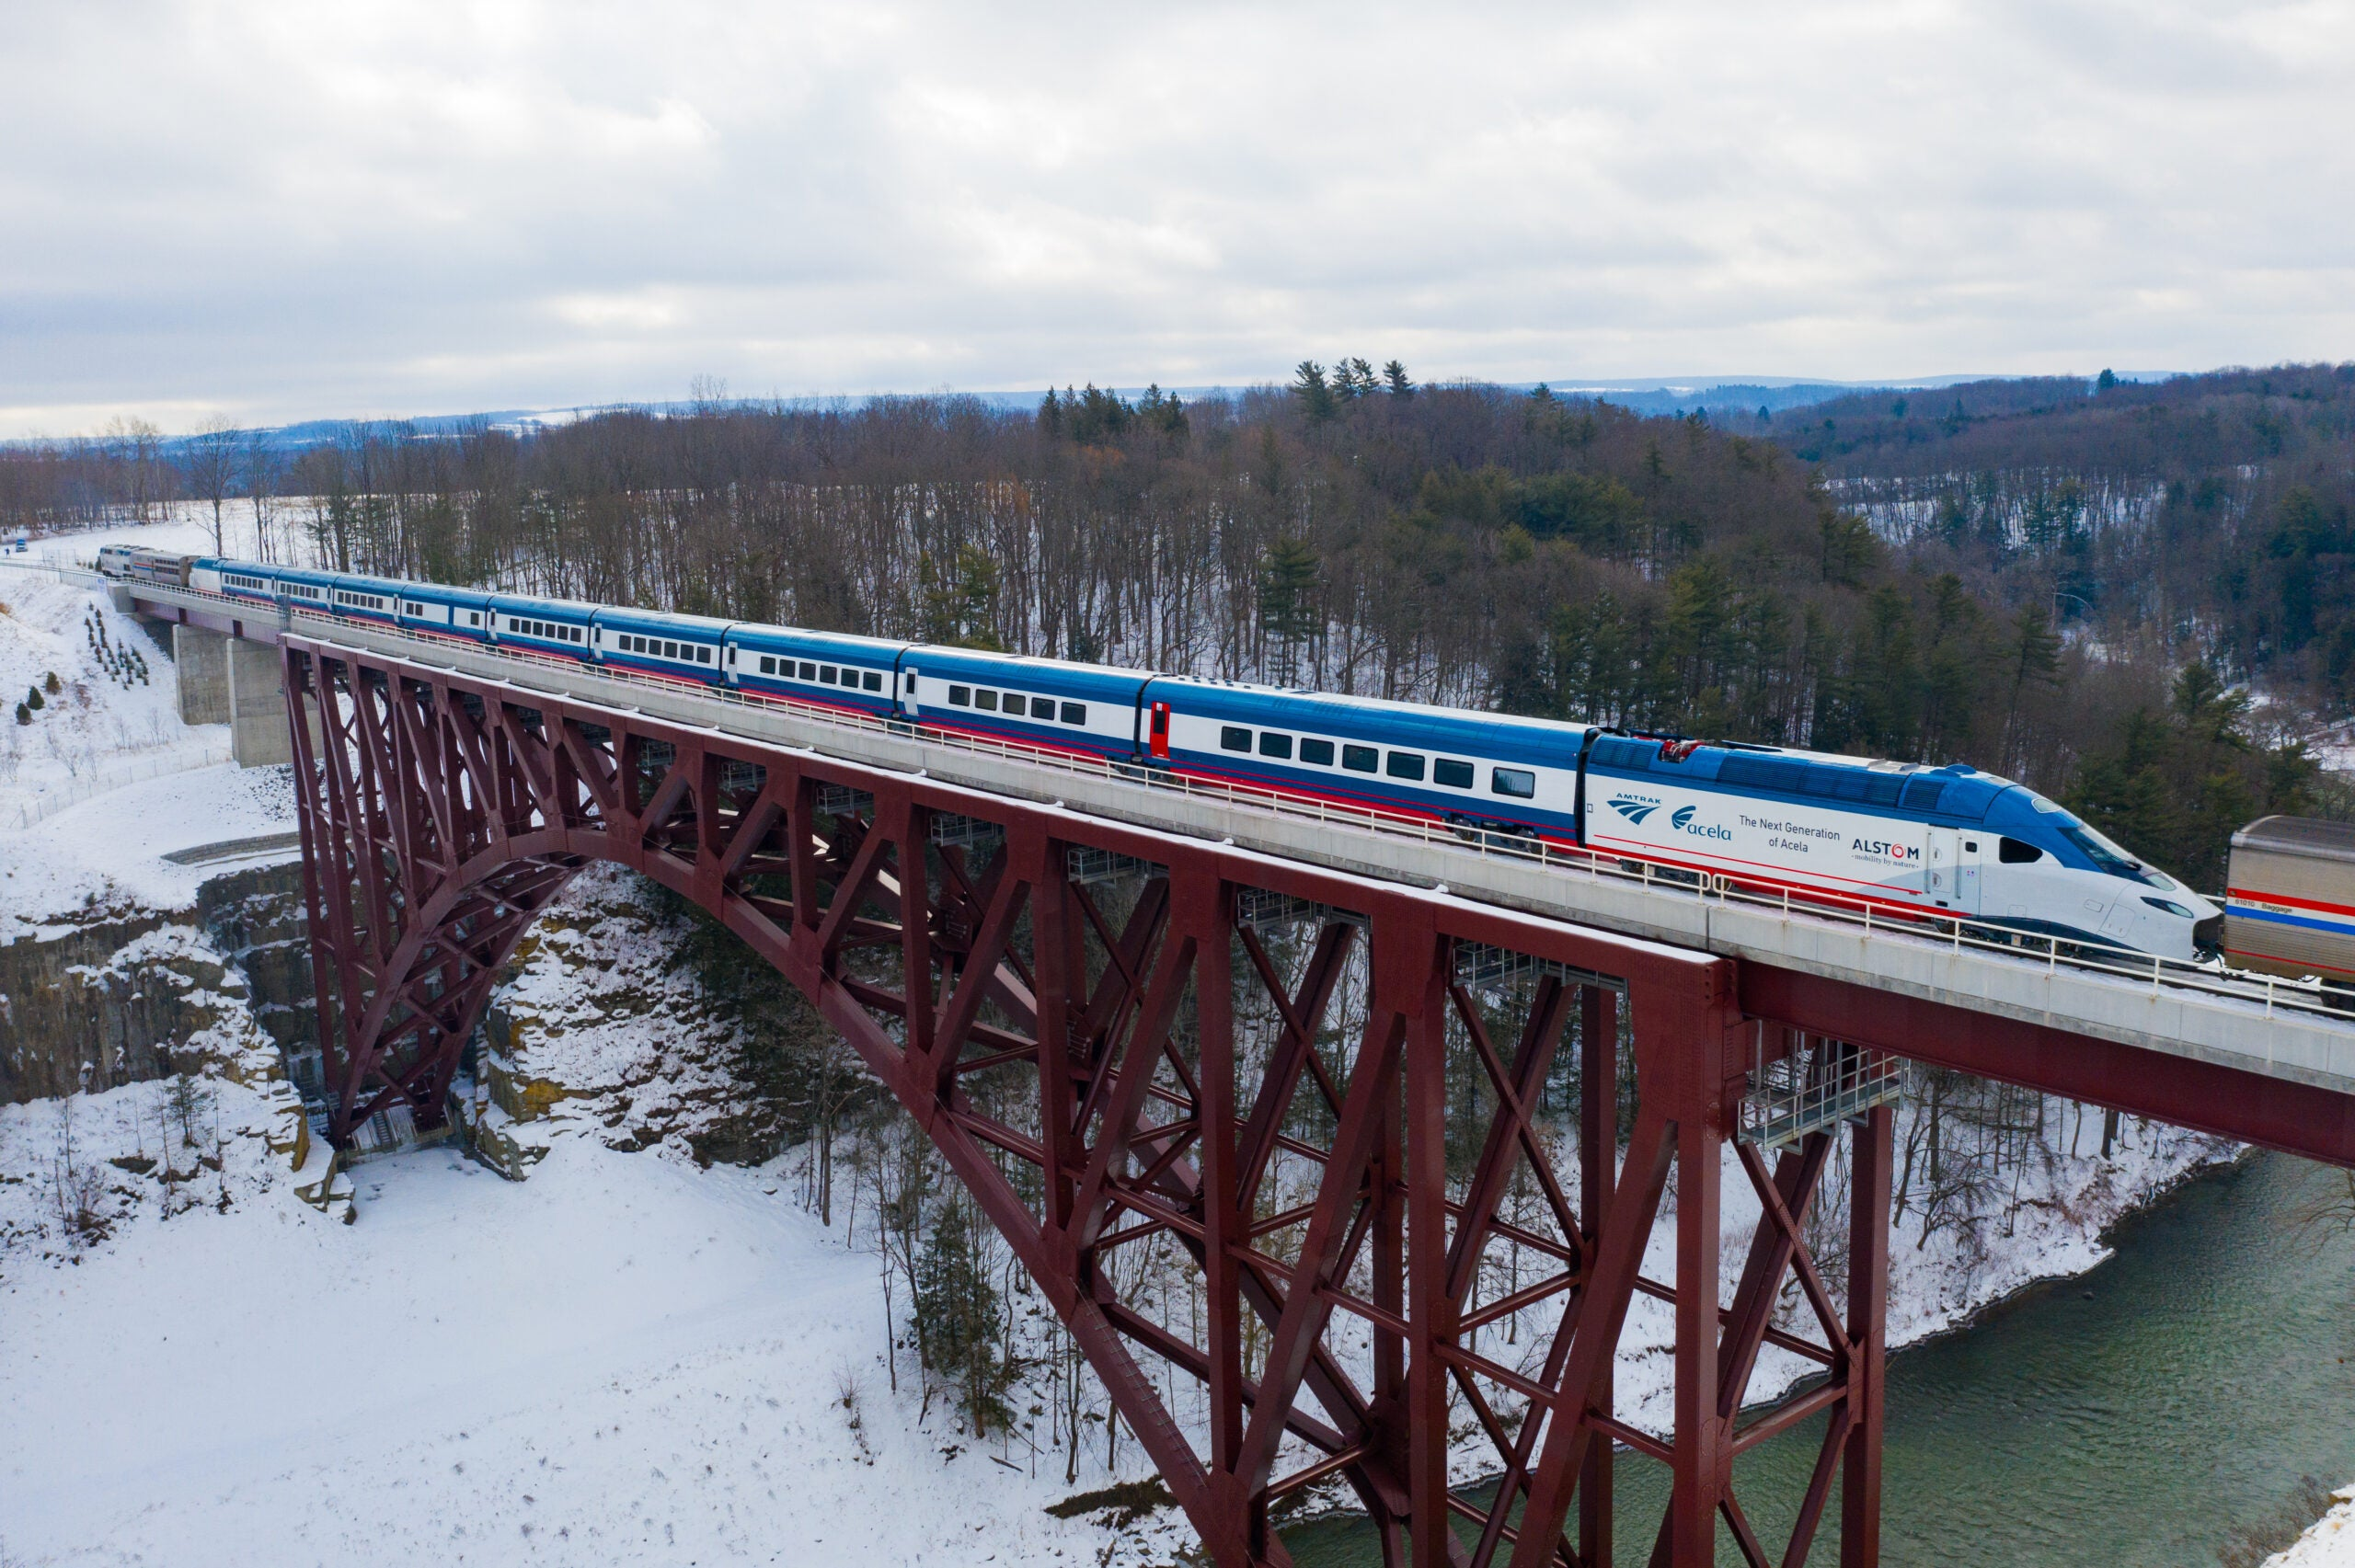 Amtrak shows off video of new Acela high-speed trains; Service set for late 2021